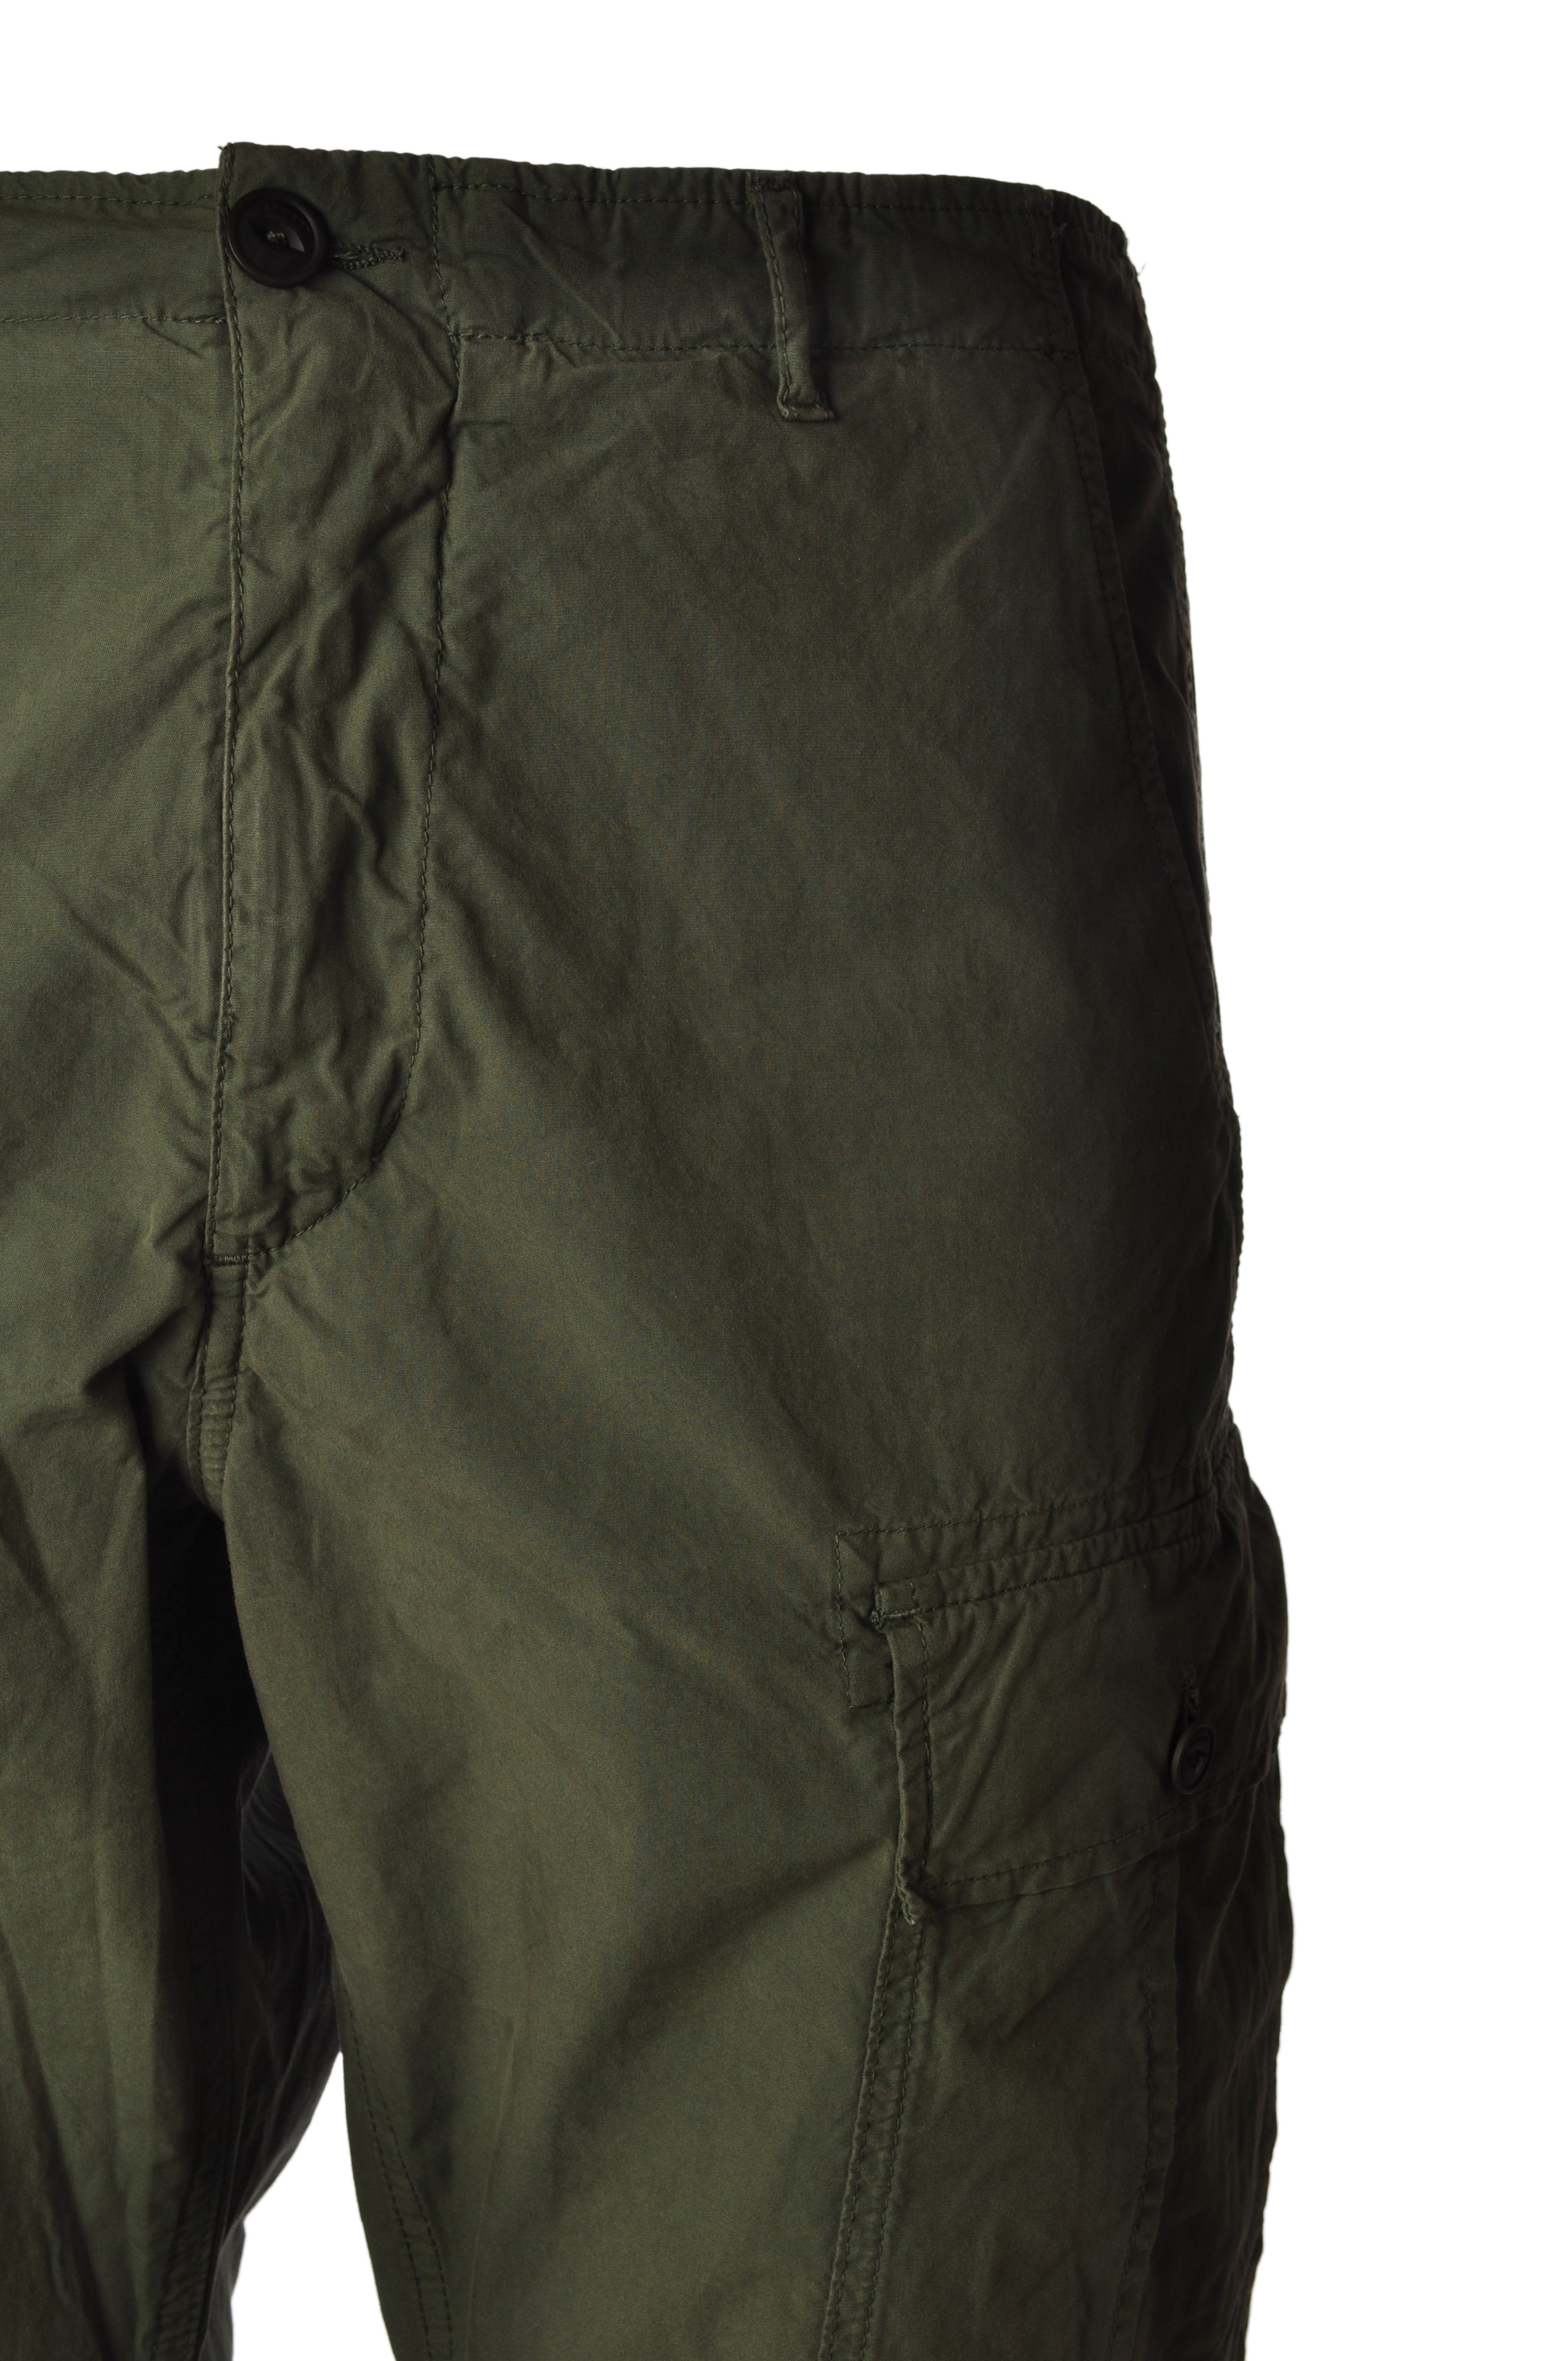 TROUSERS - Shorts 40weft Cheap Prices Reliable APEox